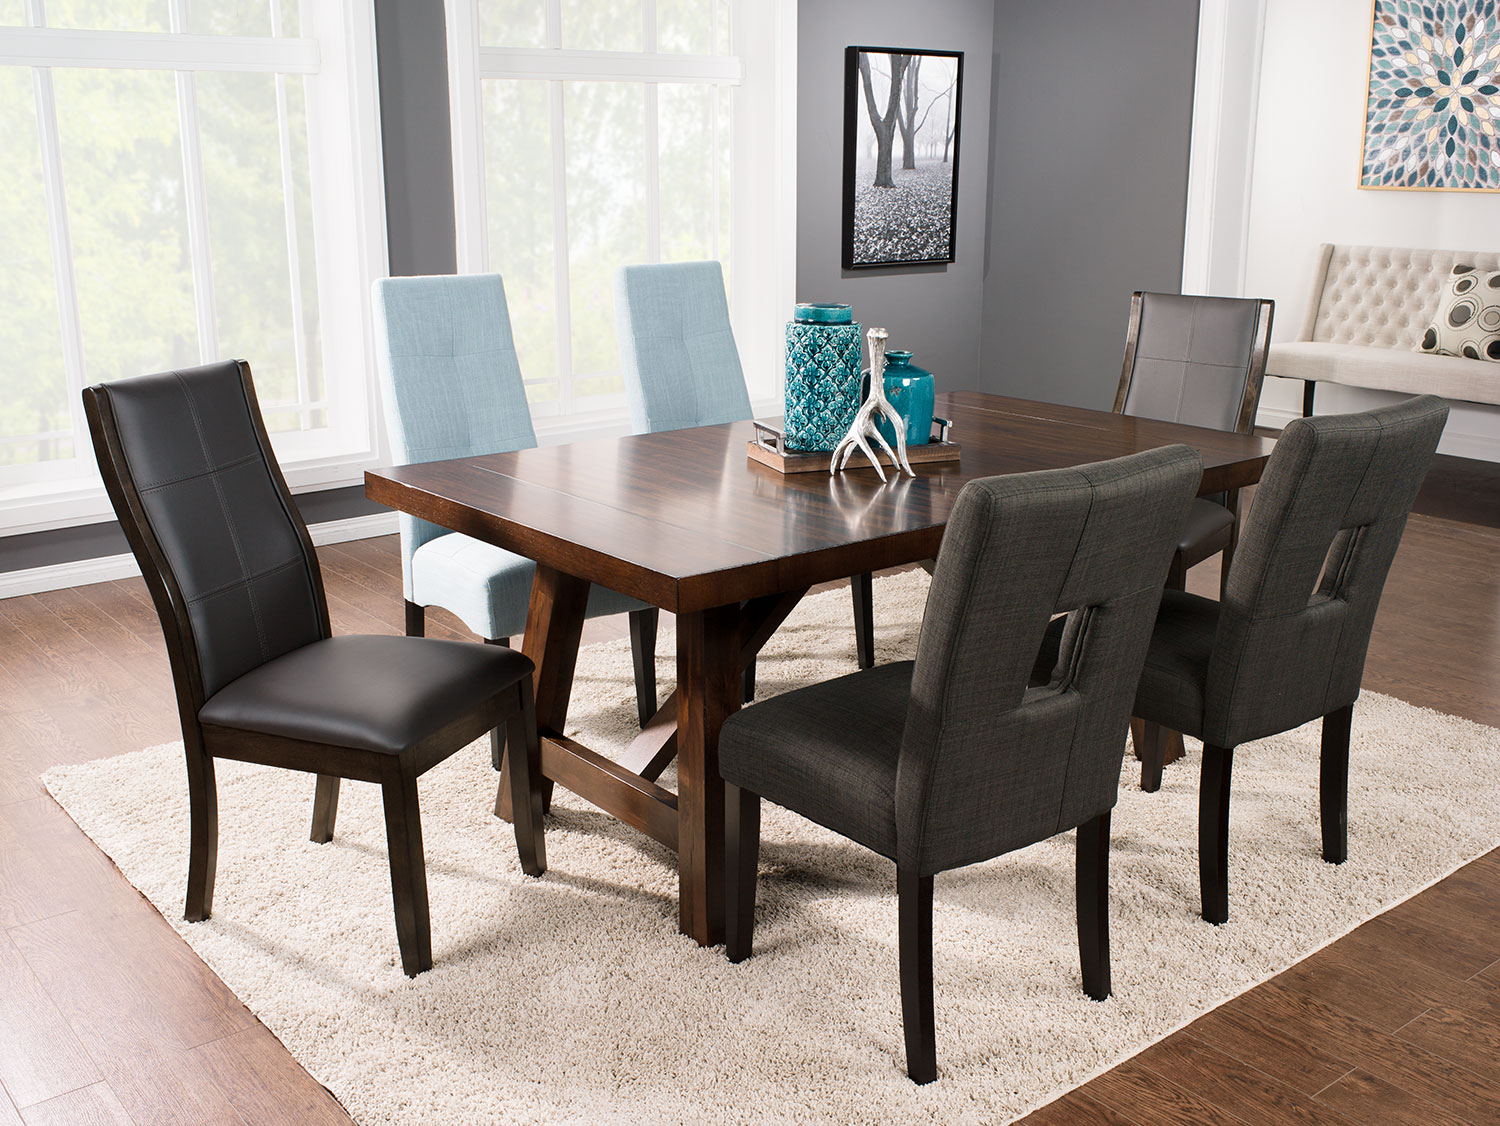 Adara 7-Piece Dining Package with Assorted Chairs